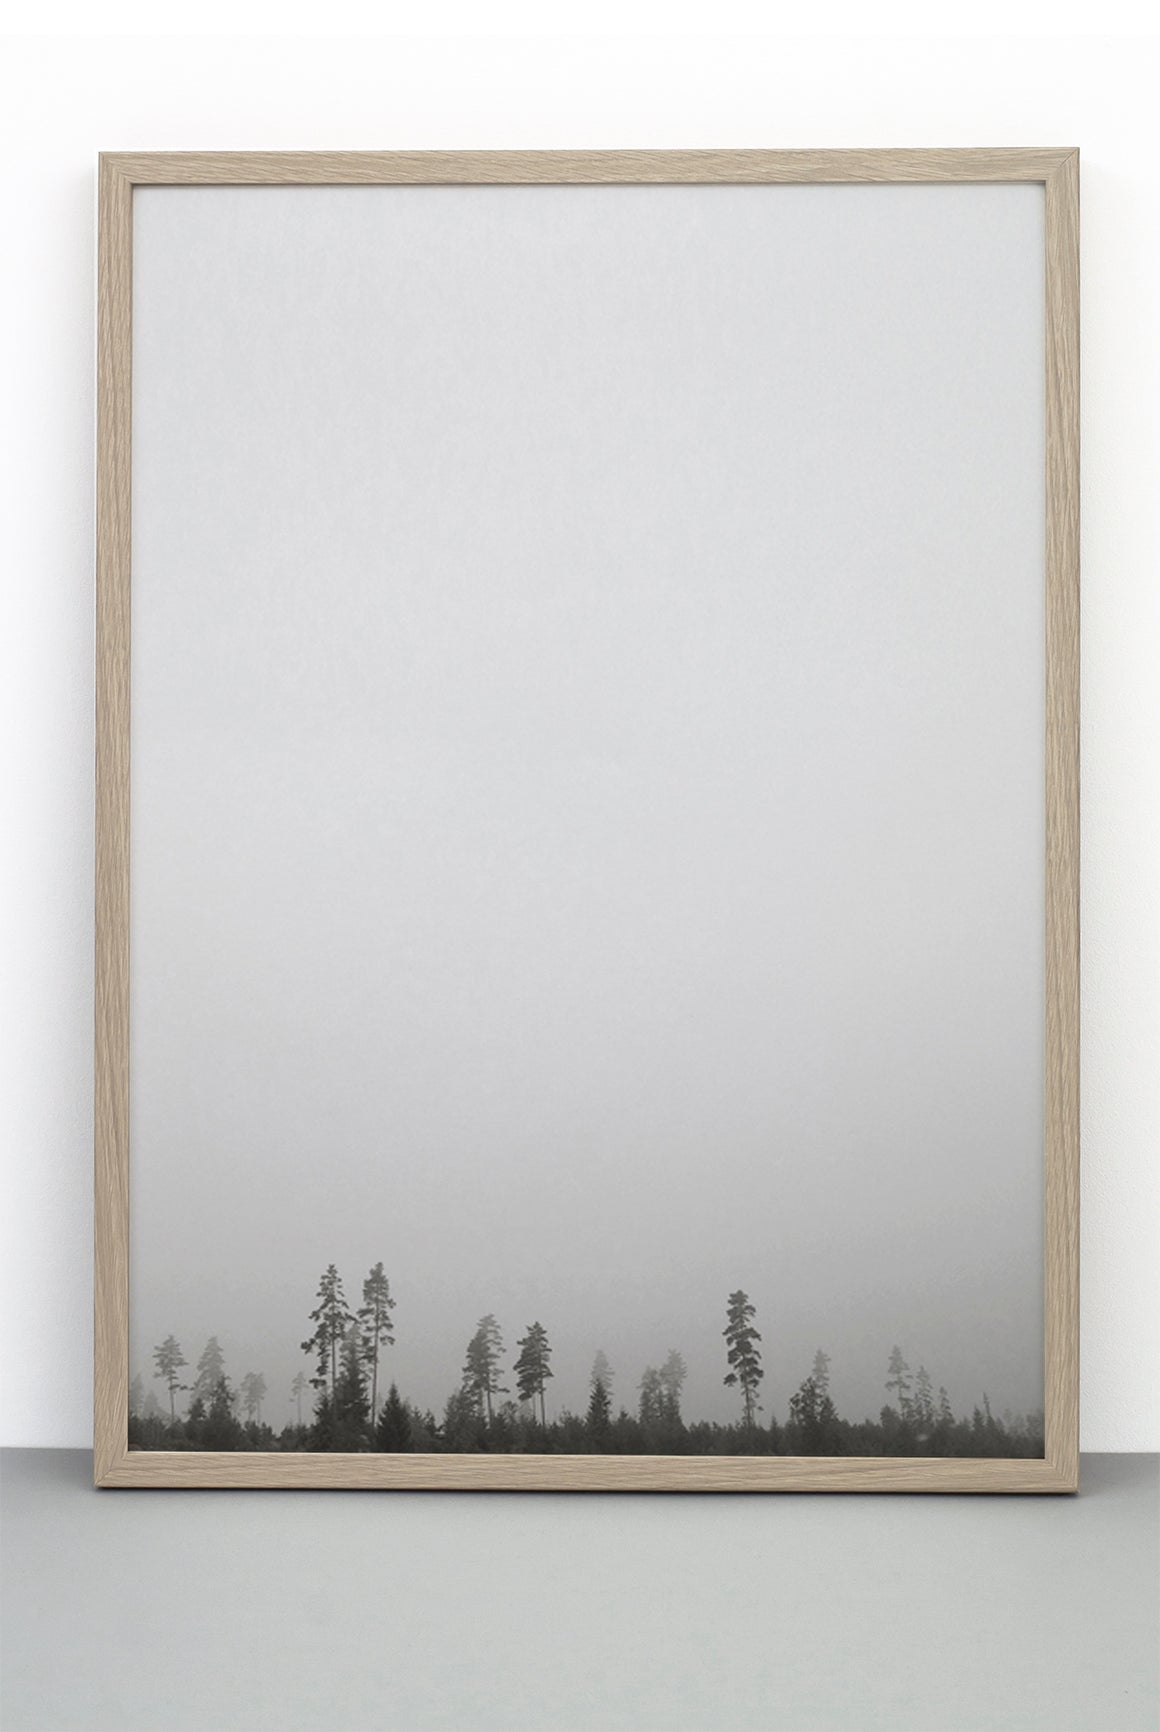 FOREST PRINT, PHOTOGRAPHIC POSTER OF TREES